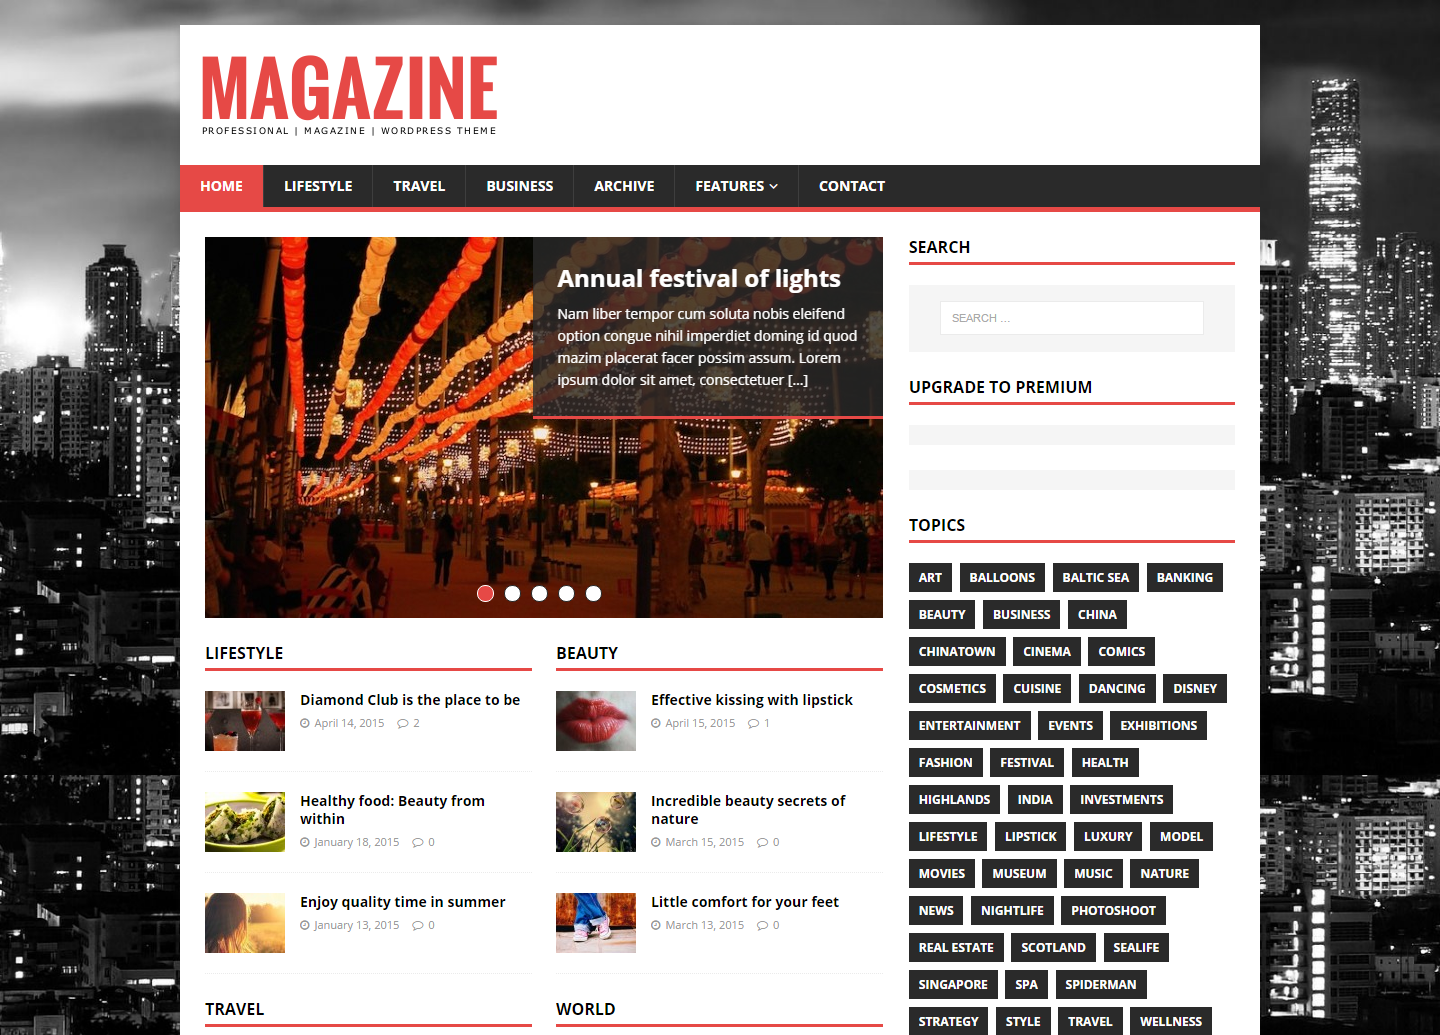 mh-magazine-lite-free-wordpress-theme